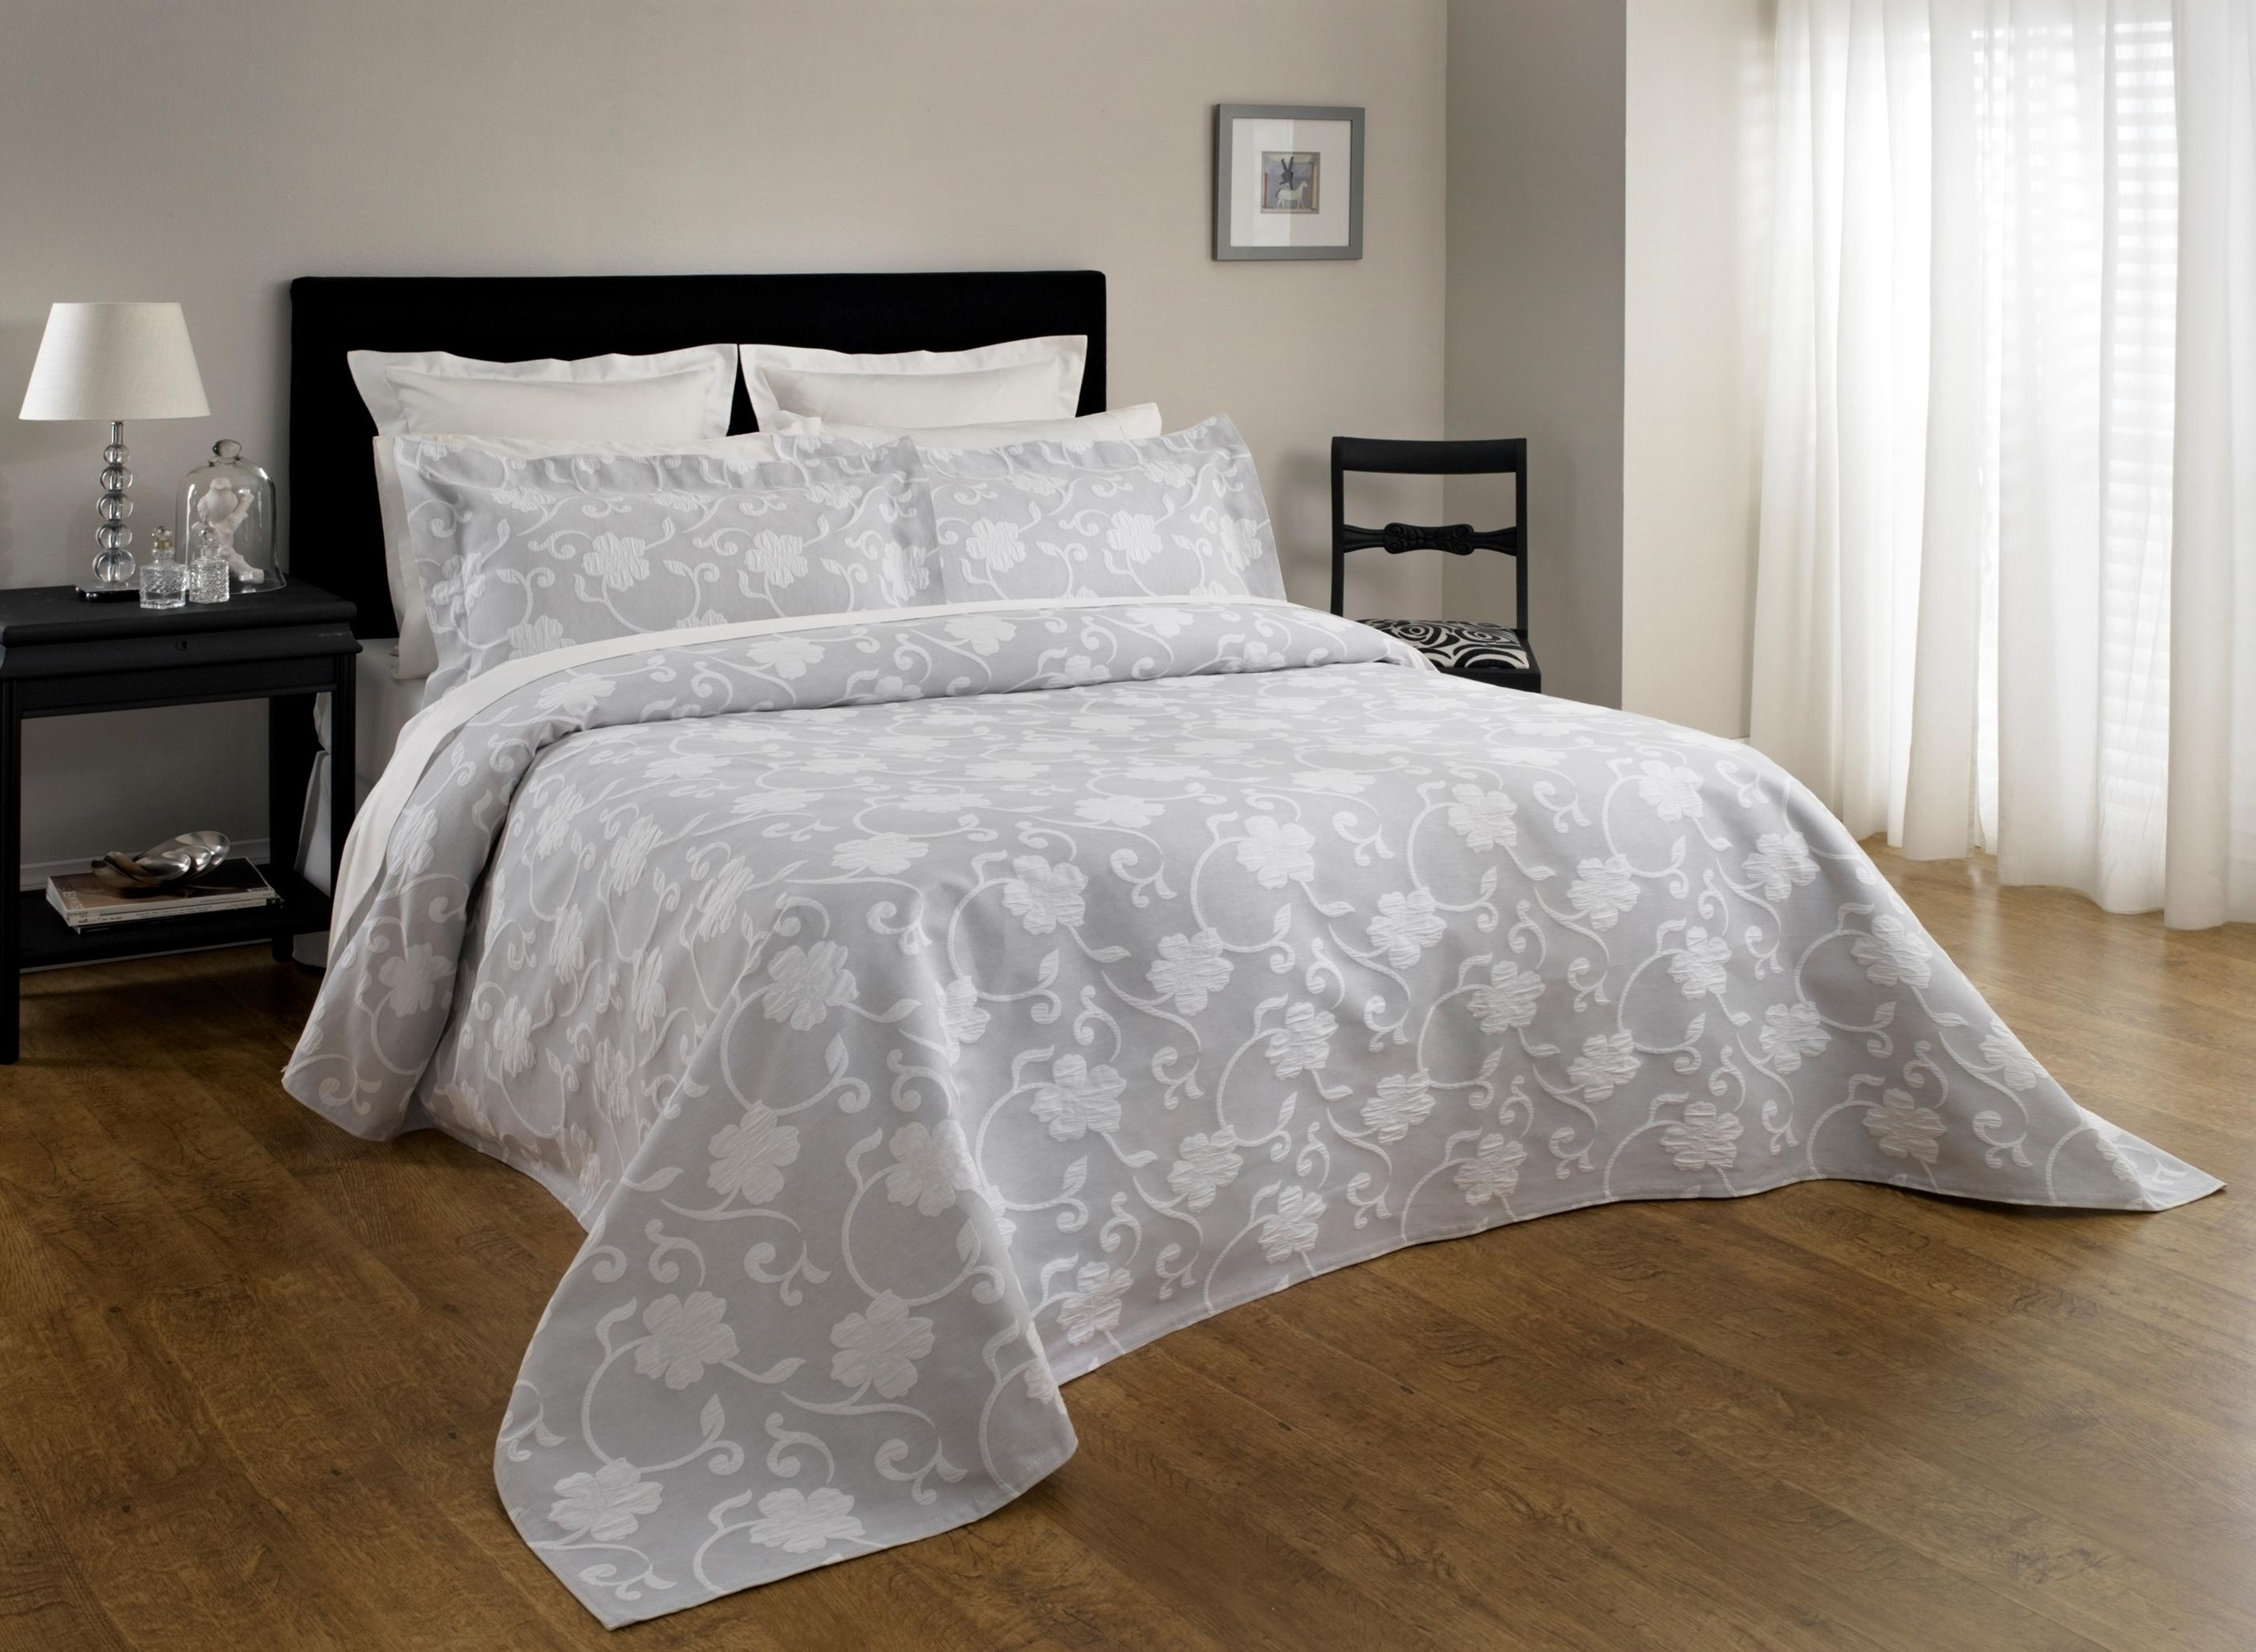 Summer Bedspreads Queen | Kohls King Size Comforter Sets | Queen Bedspreads